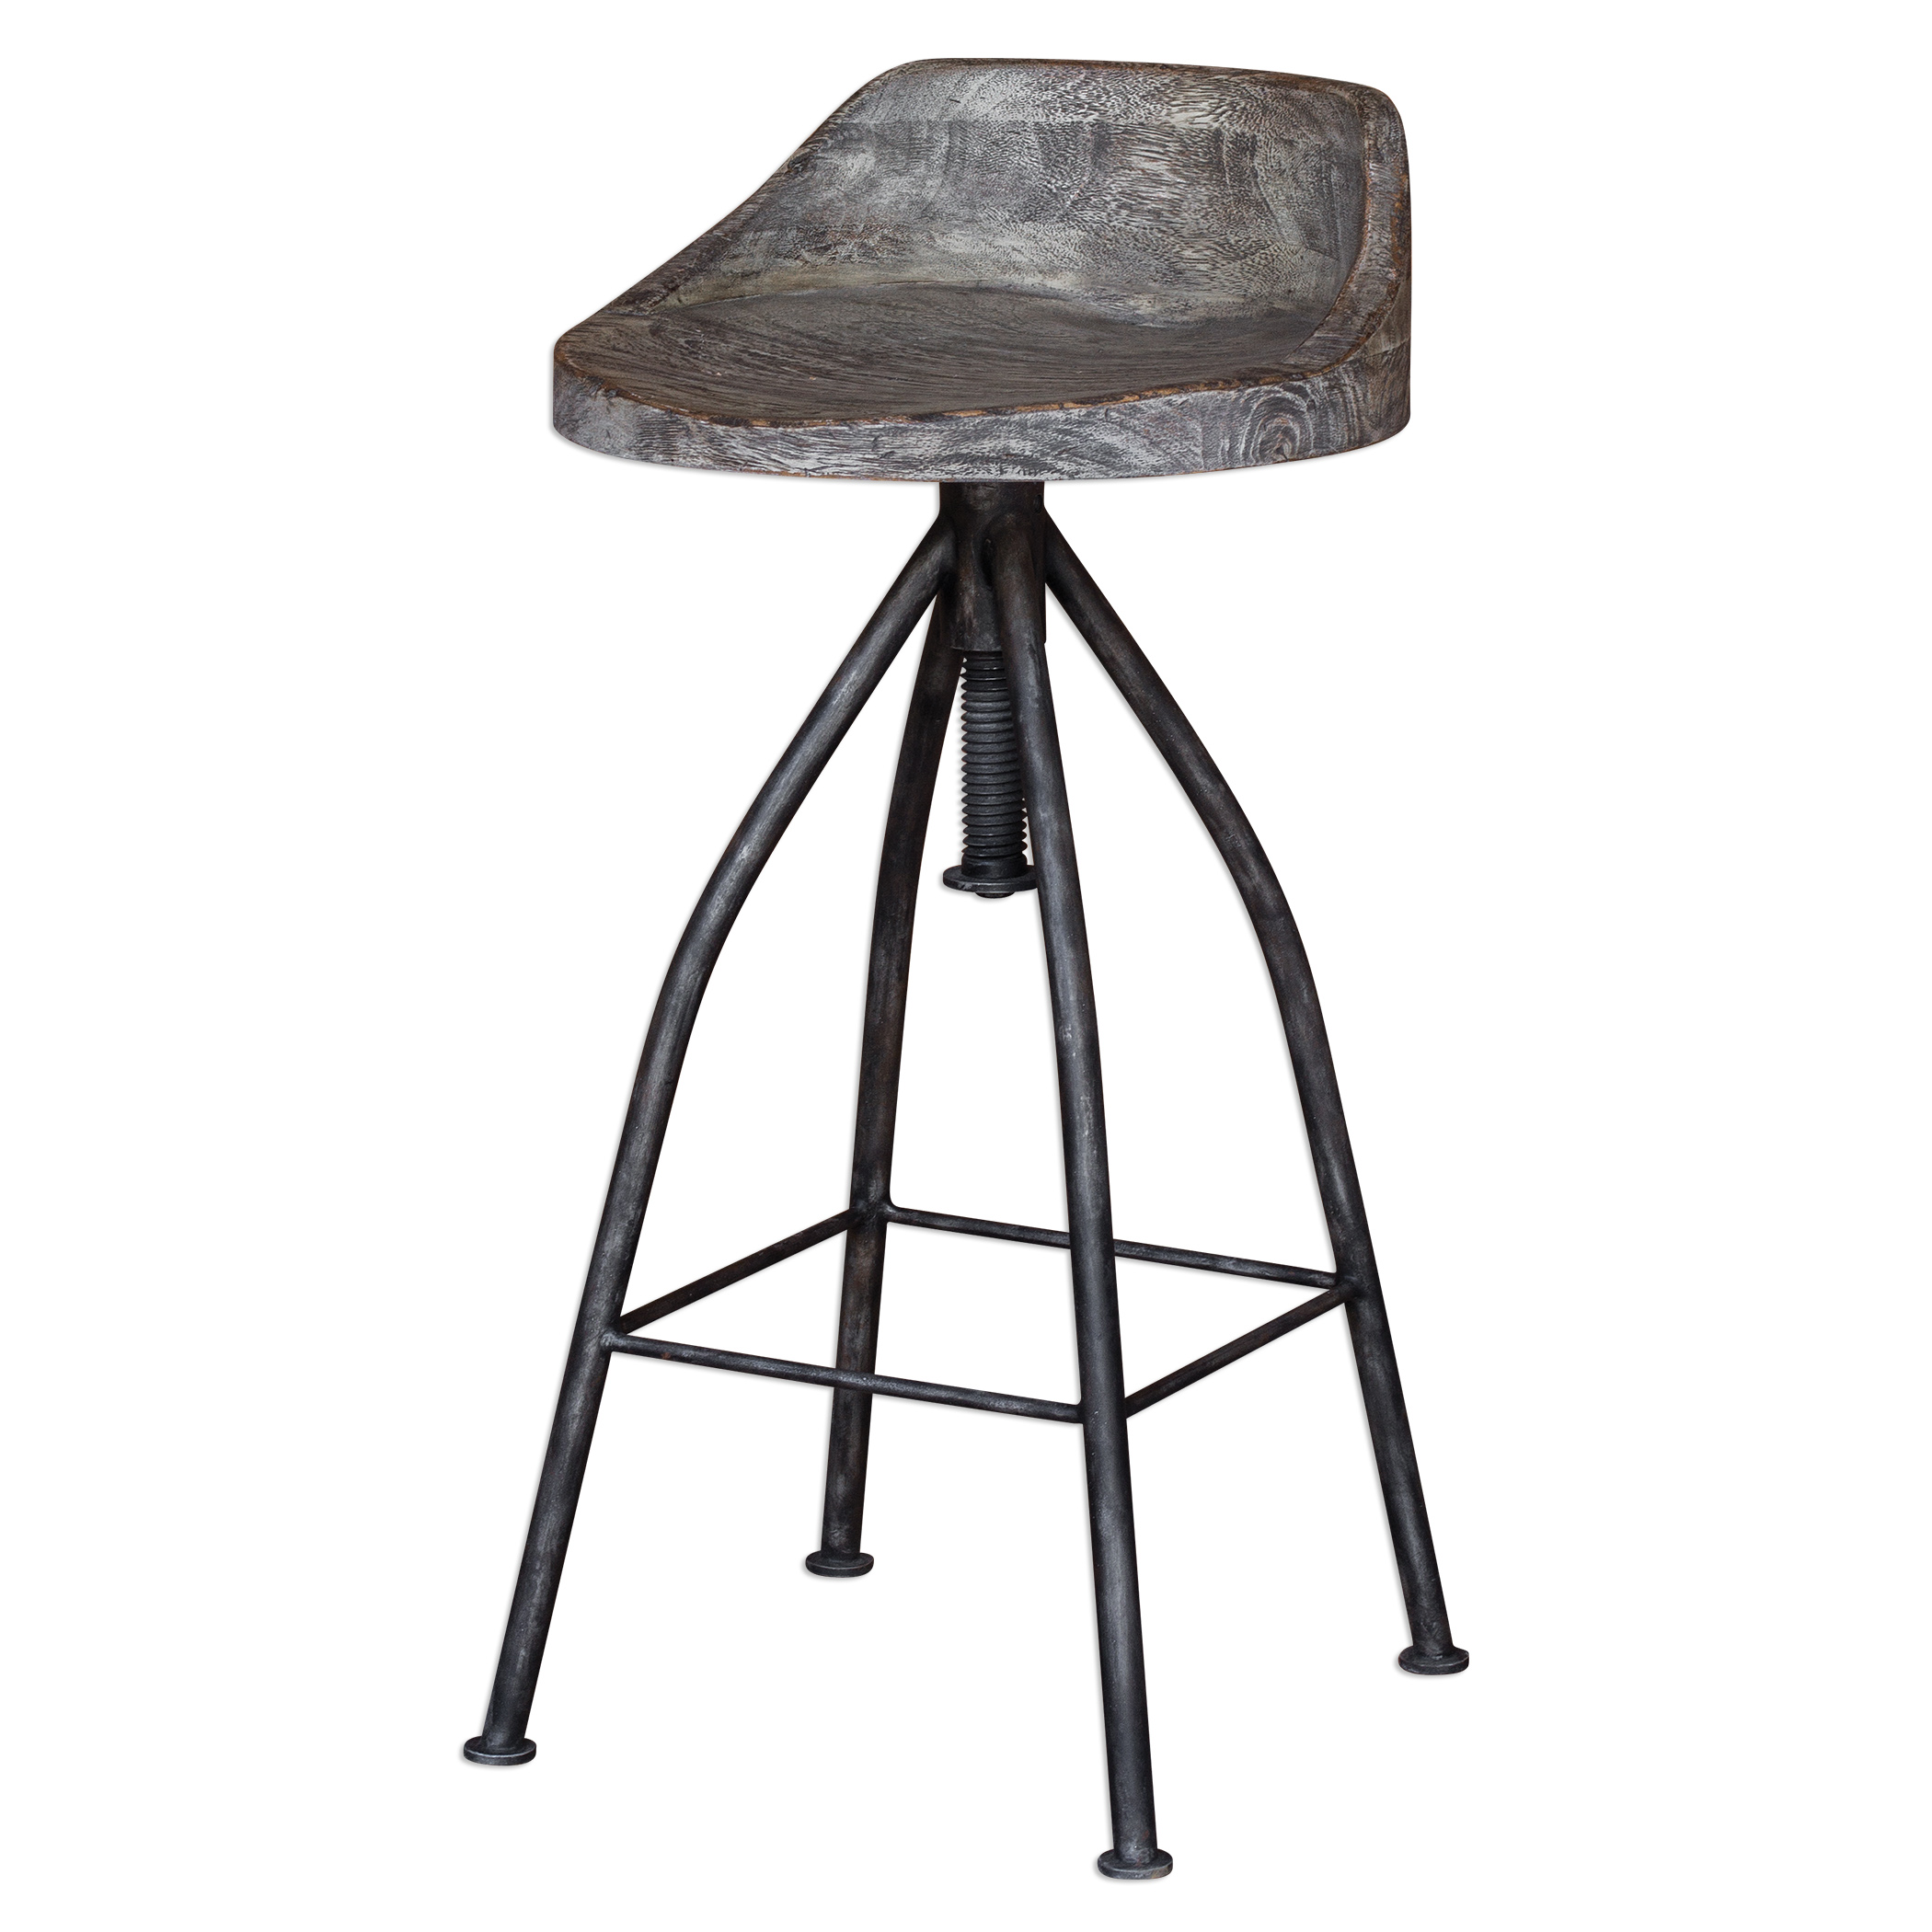 Accent Furniture - Stools Kairu Wooden Bar Stool by Uttermost at Upper Room Home Furnishings